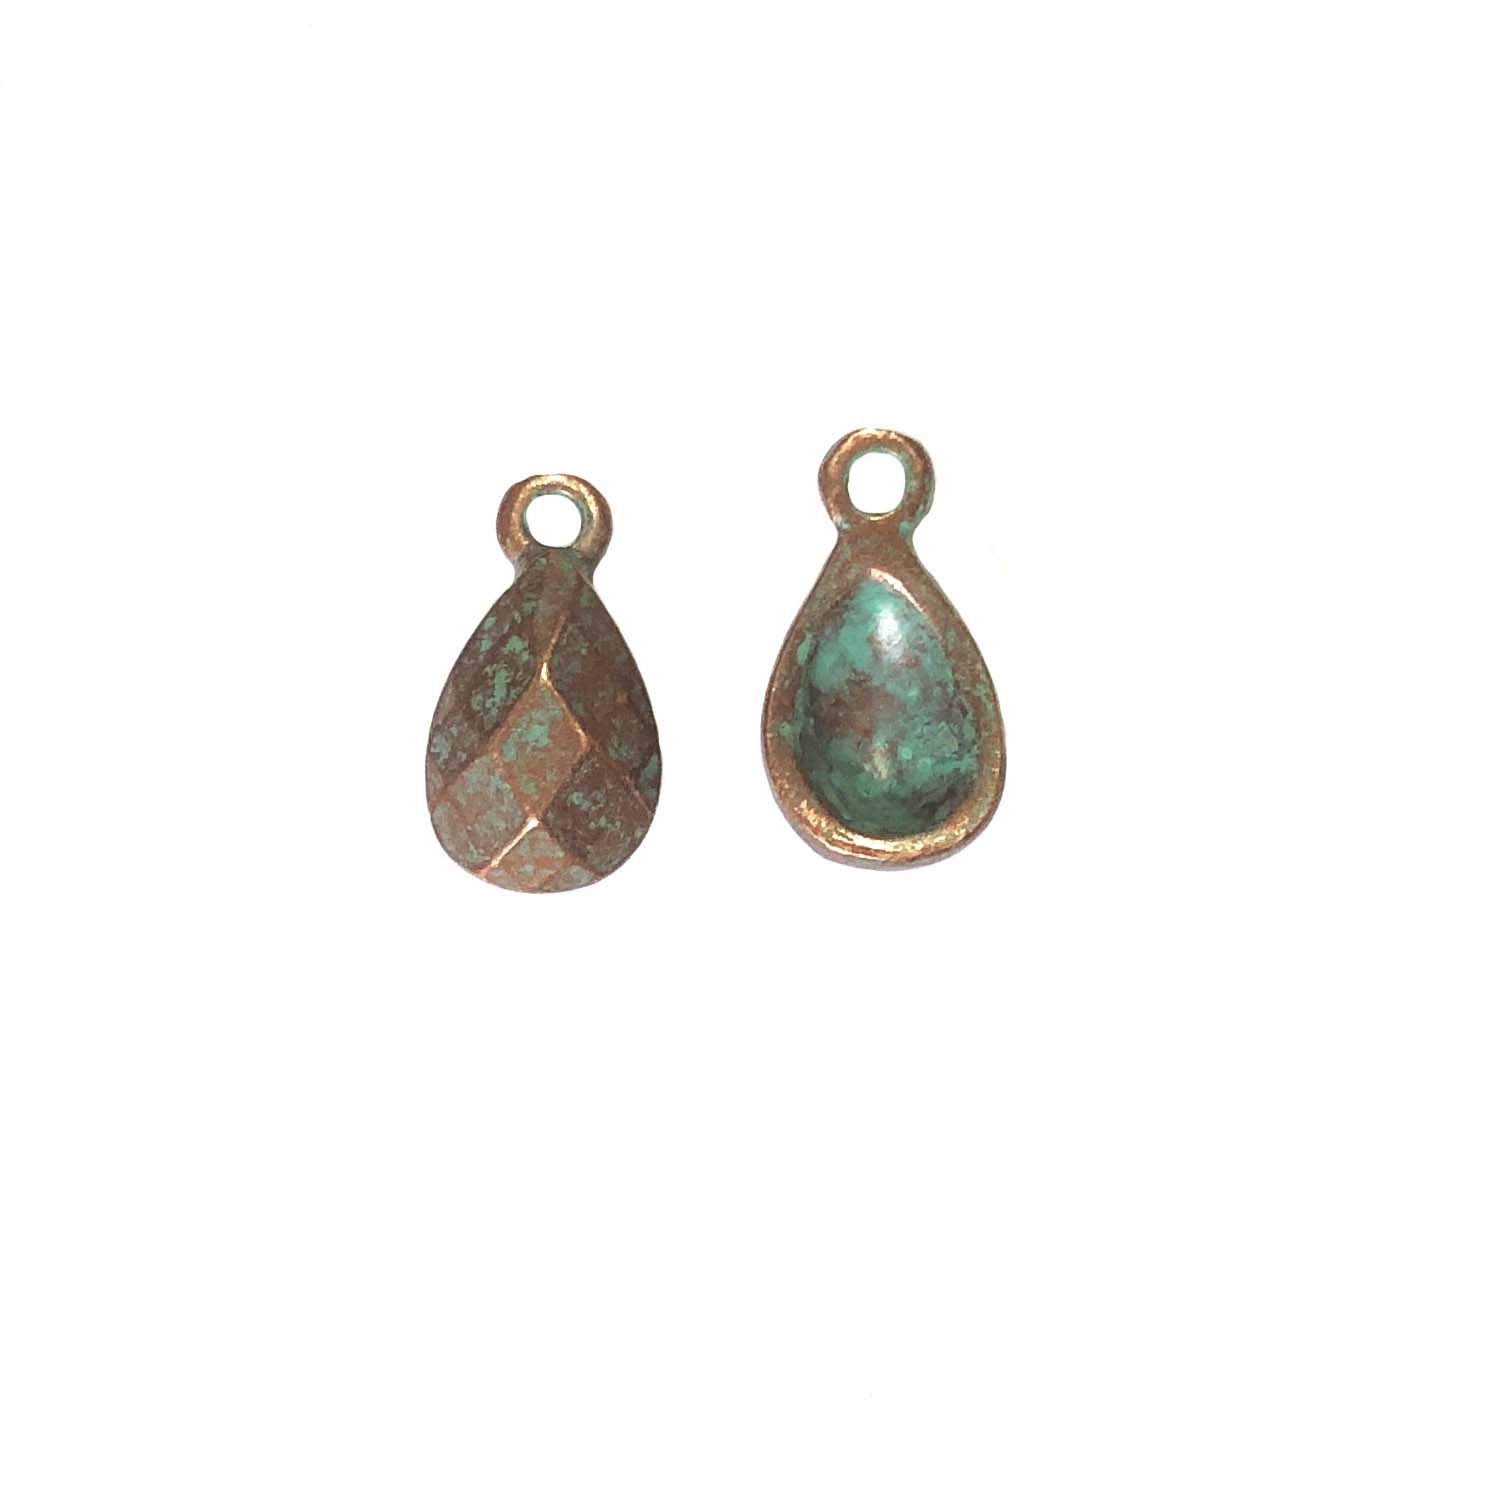 Victorian ear drop, jewelry charm, 0302, lead free pewter, B'sue by 1928, weathered copper, vintage jewelry parts, pewter jewelry parts, nickel free finish,us made, 1928 Company, designer jewelry, B'sue Boutiques, weathered green patina